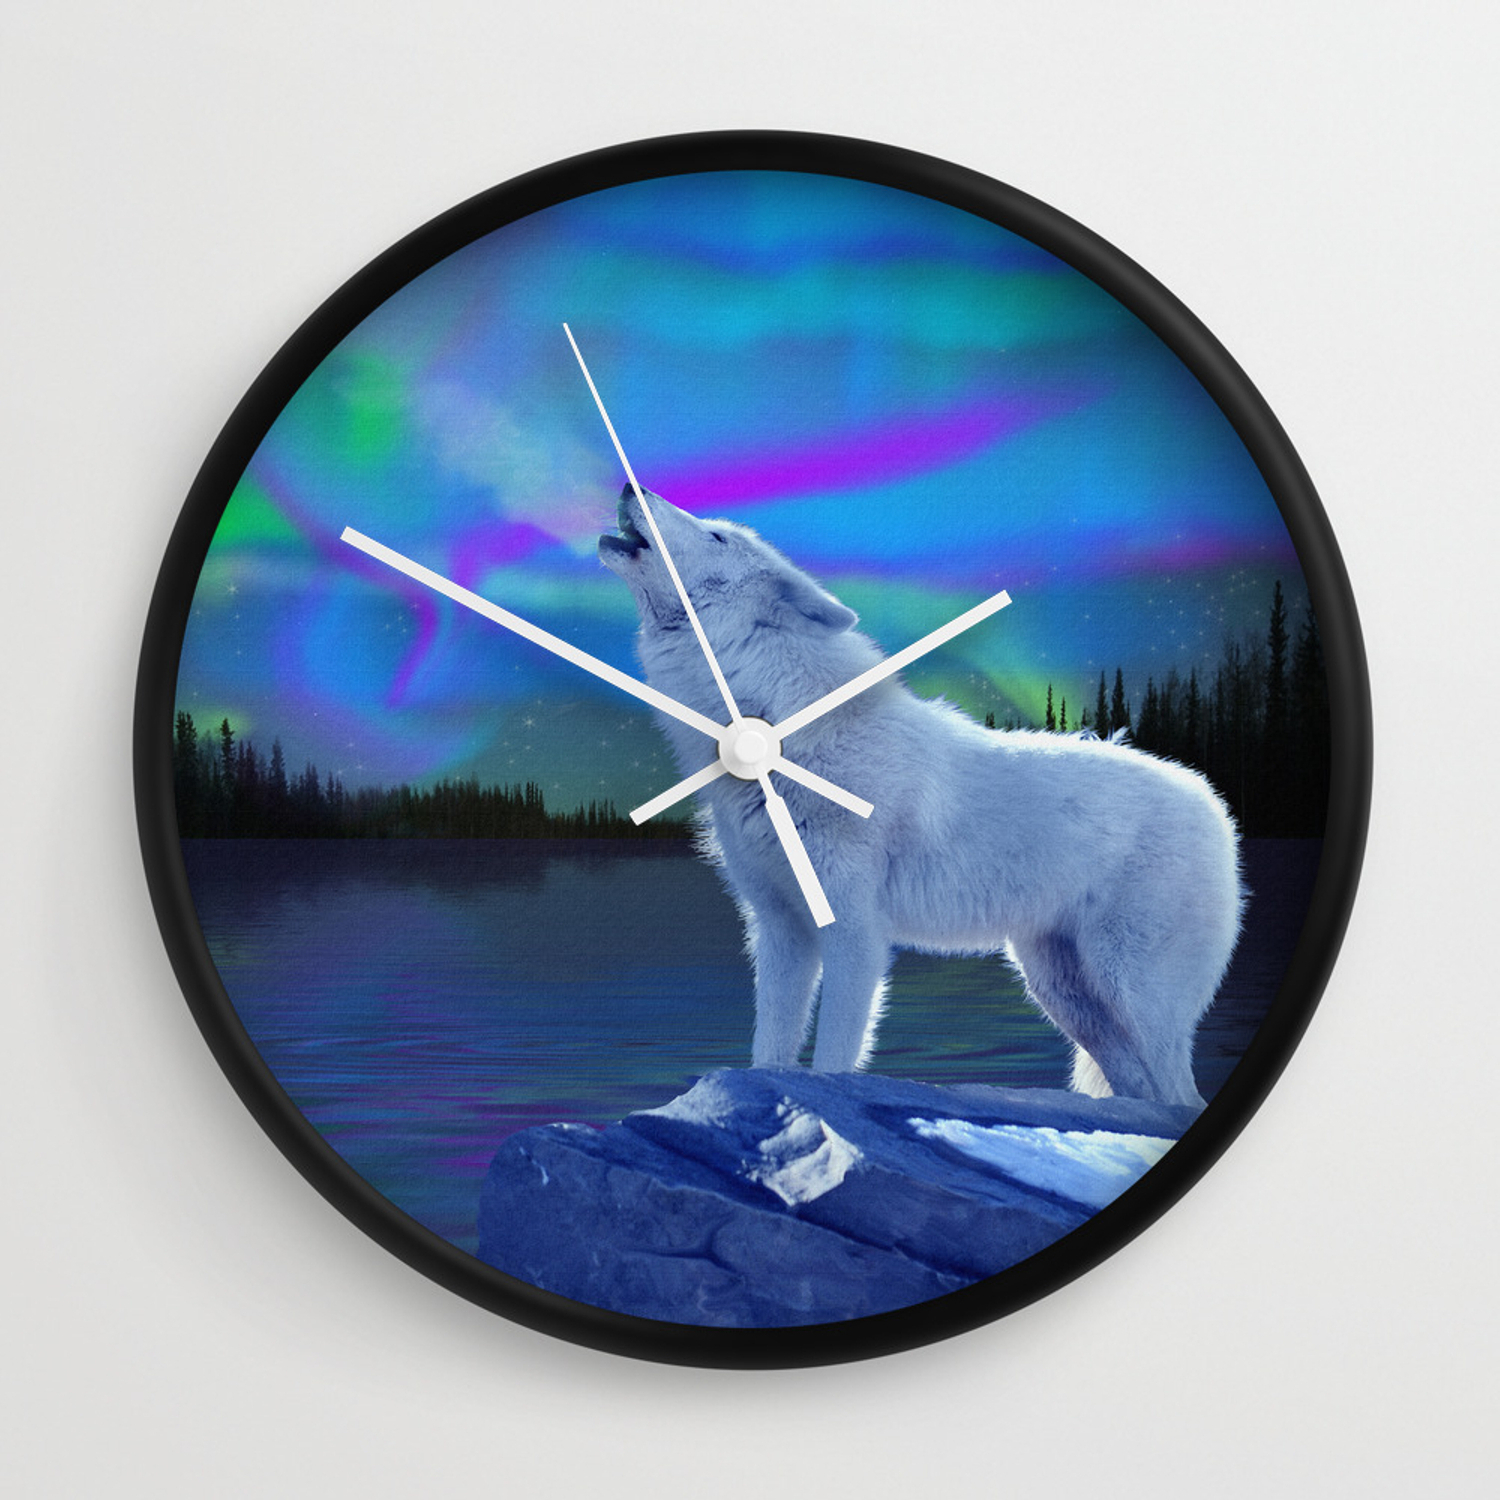 Well Known Aurora Sun Wall Decor Regarding Arctic Prayer – White Wolf And Aurora Wall Clockskyeryanevans (View 18 of 20)